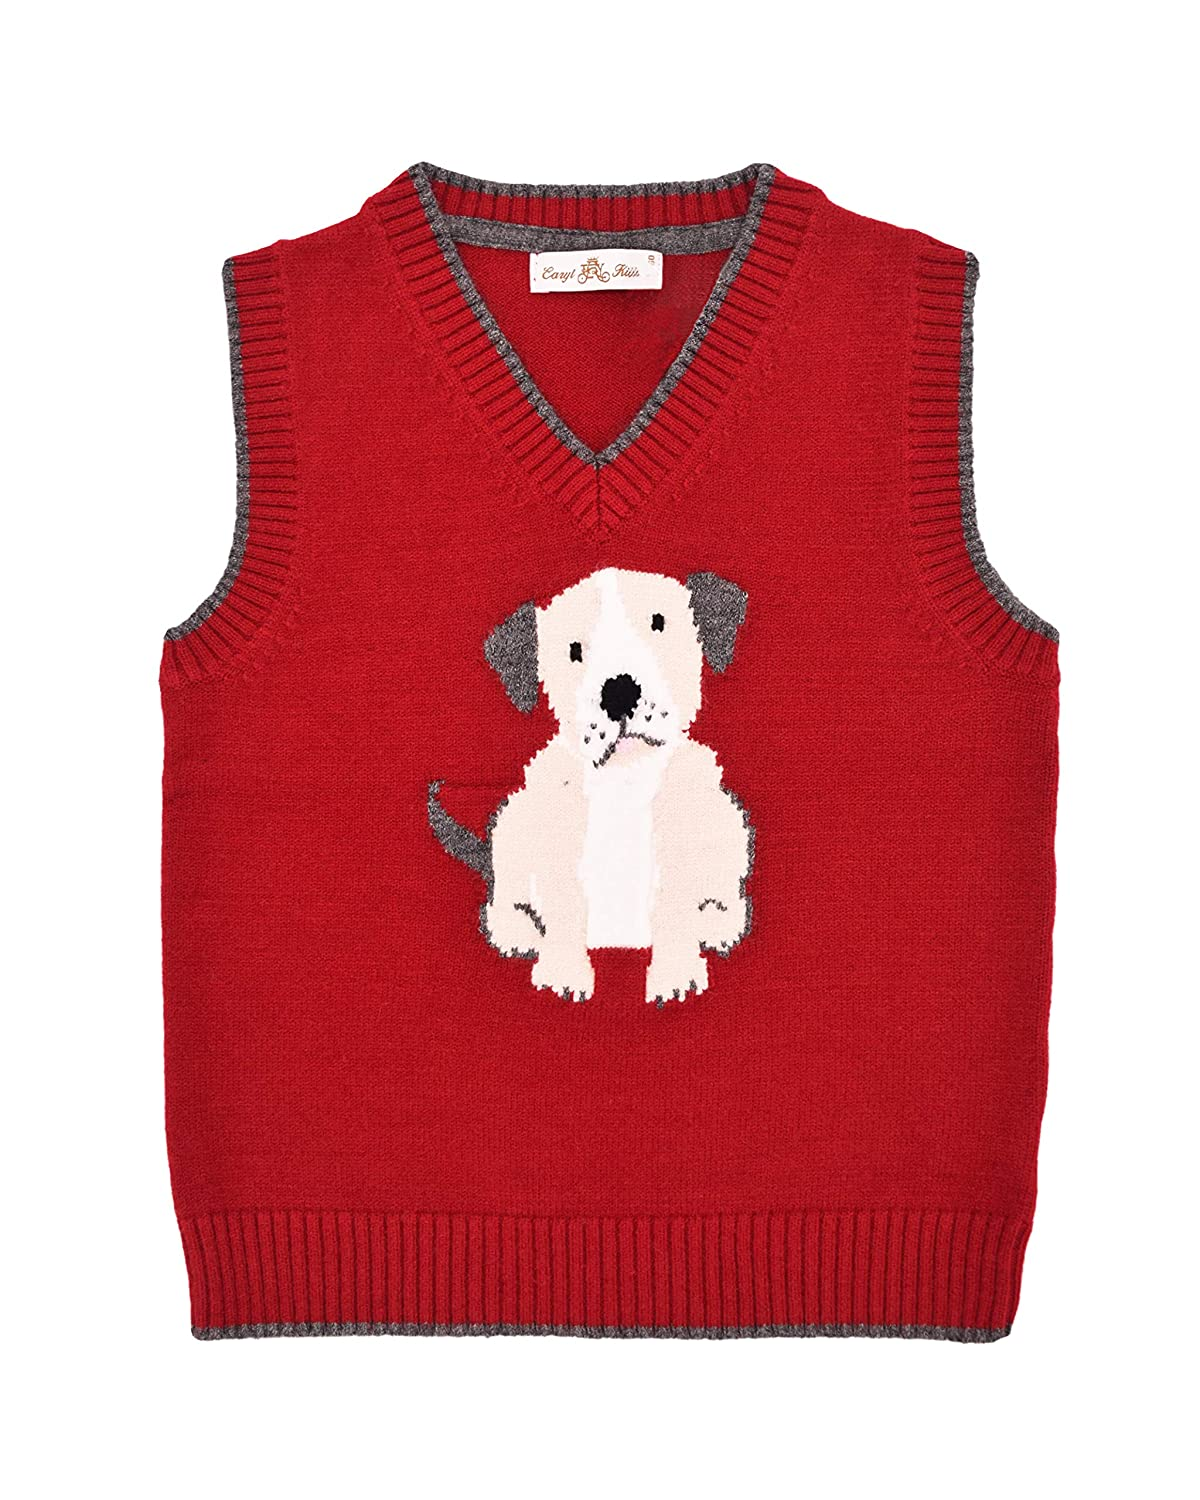 Sweater Vest for Kids V Neck Cartoon Sweater Unisex Kids Knit Waistcoat 4-7T